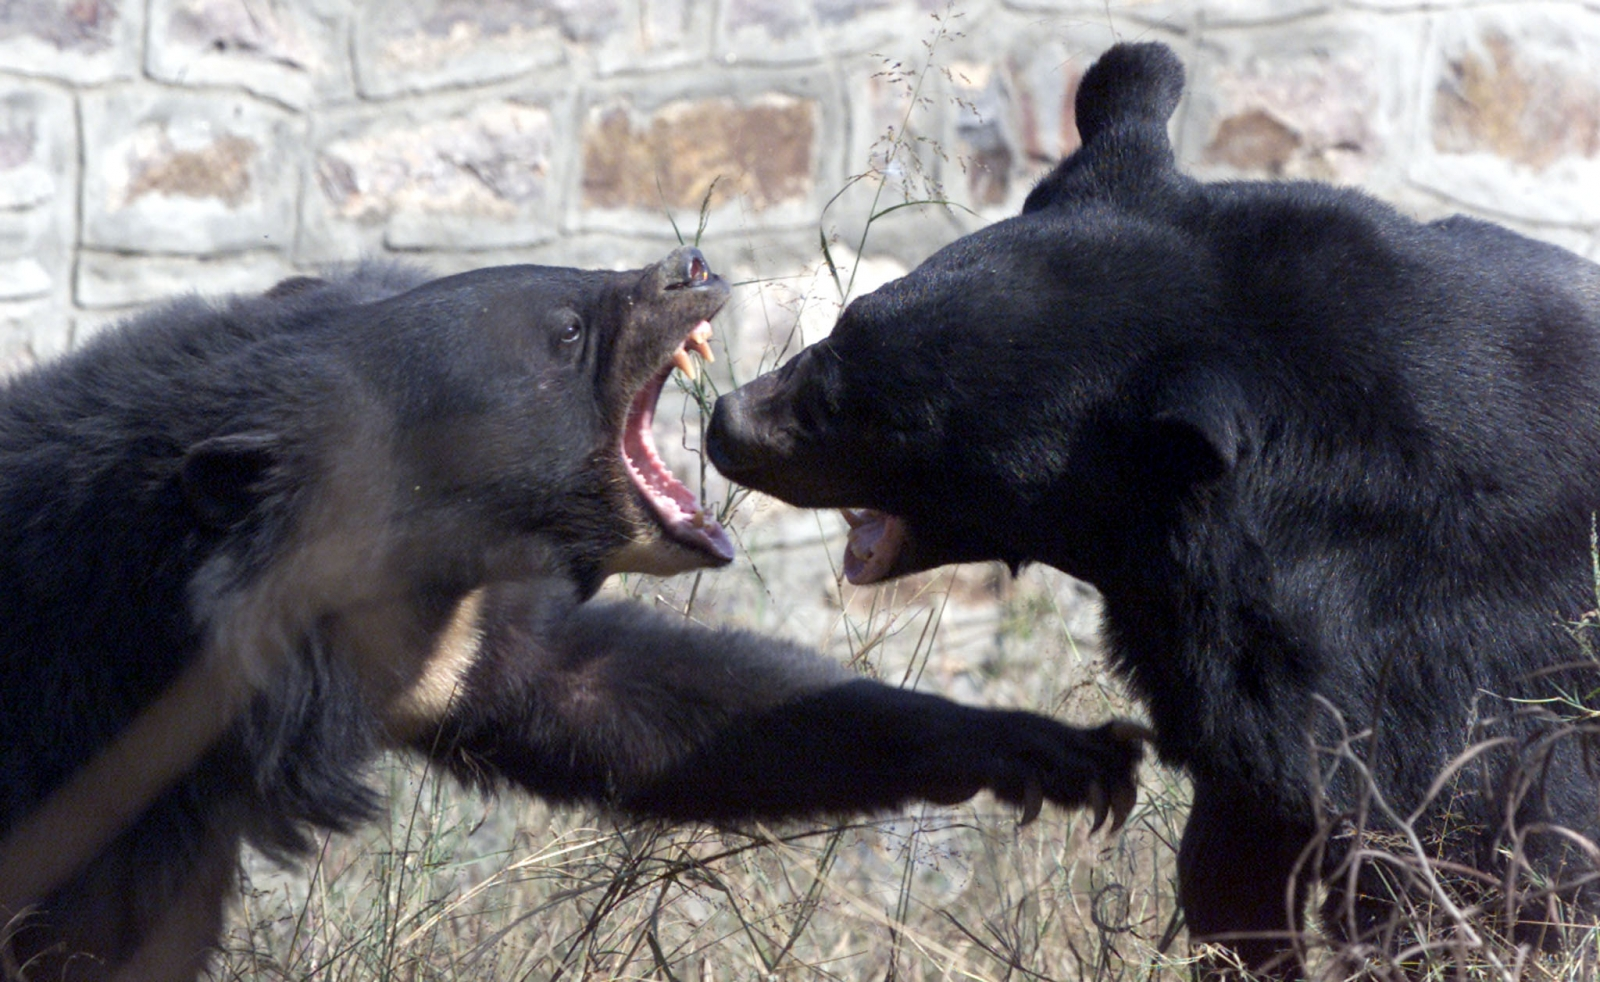 Asiatic bears